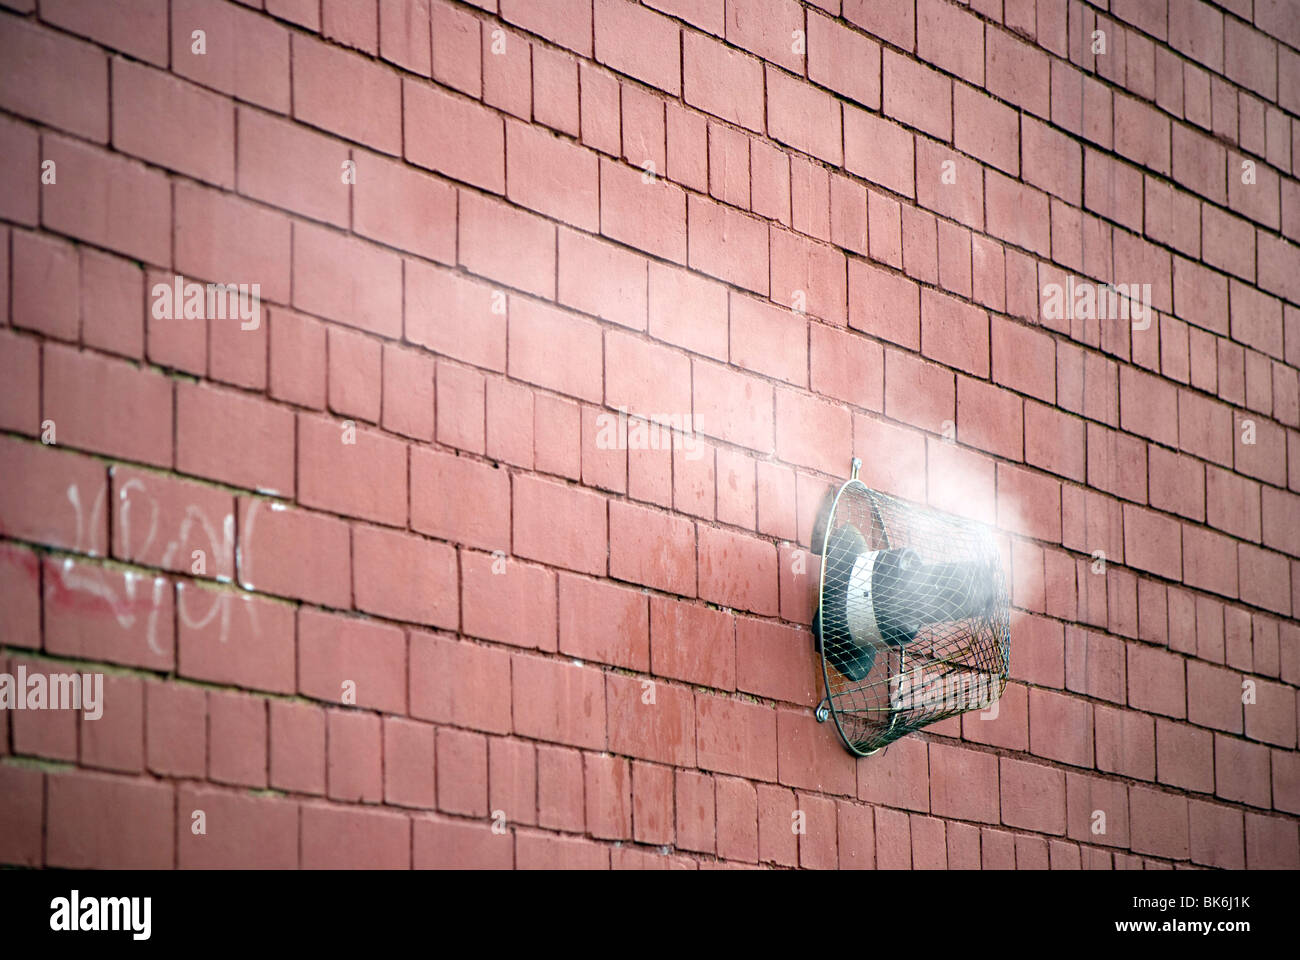 Steam rising from a gas central heating vent in the wall of a building. - Stock Image